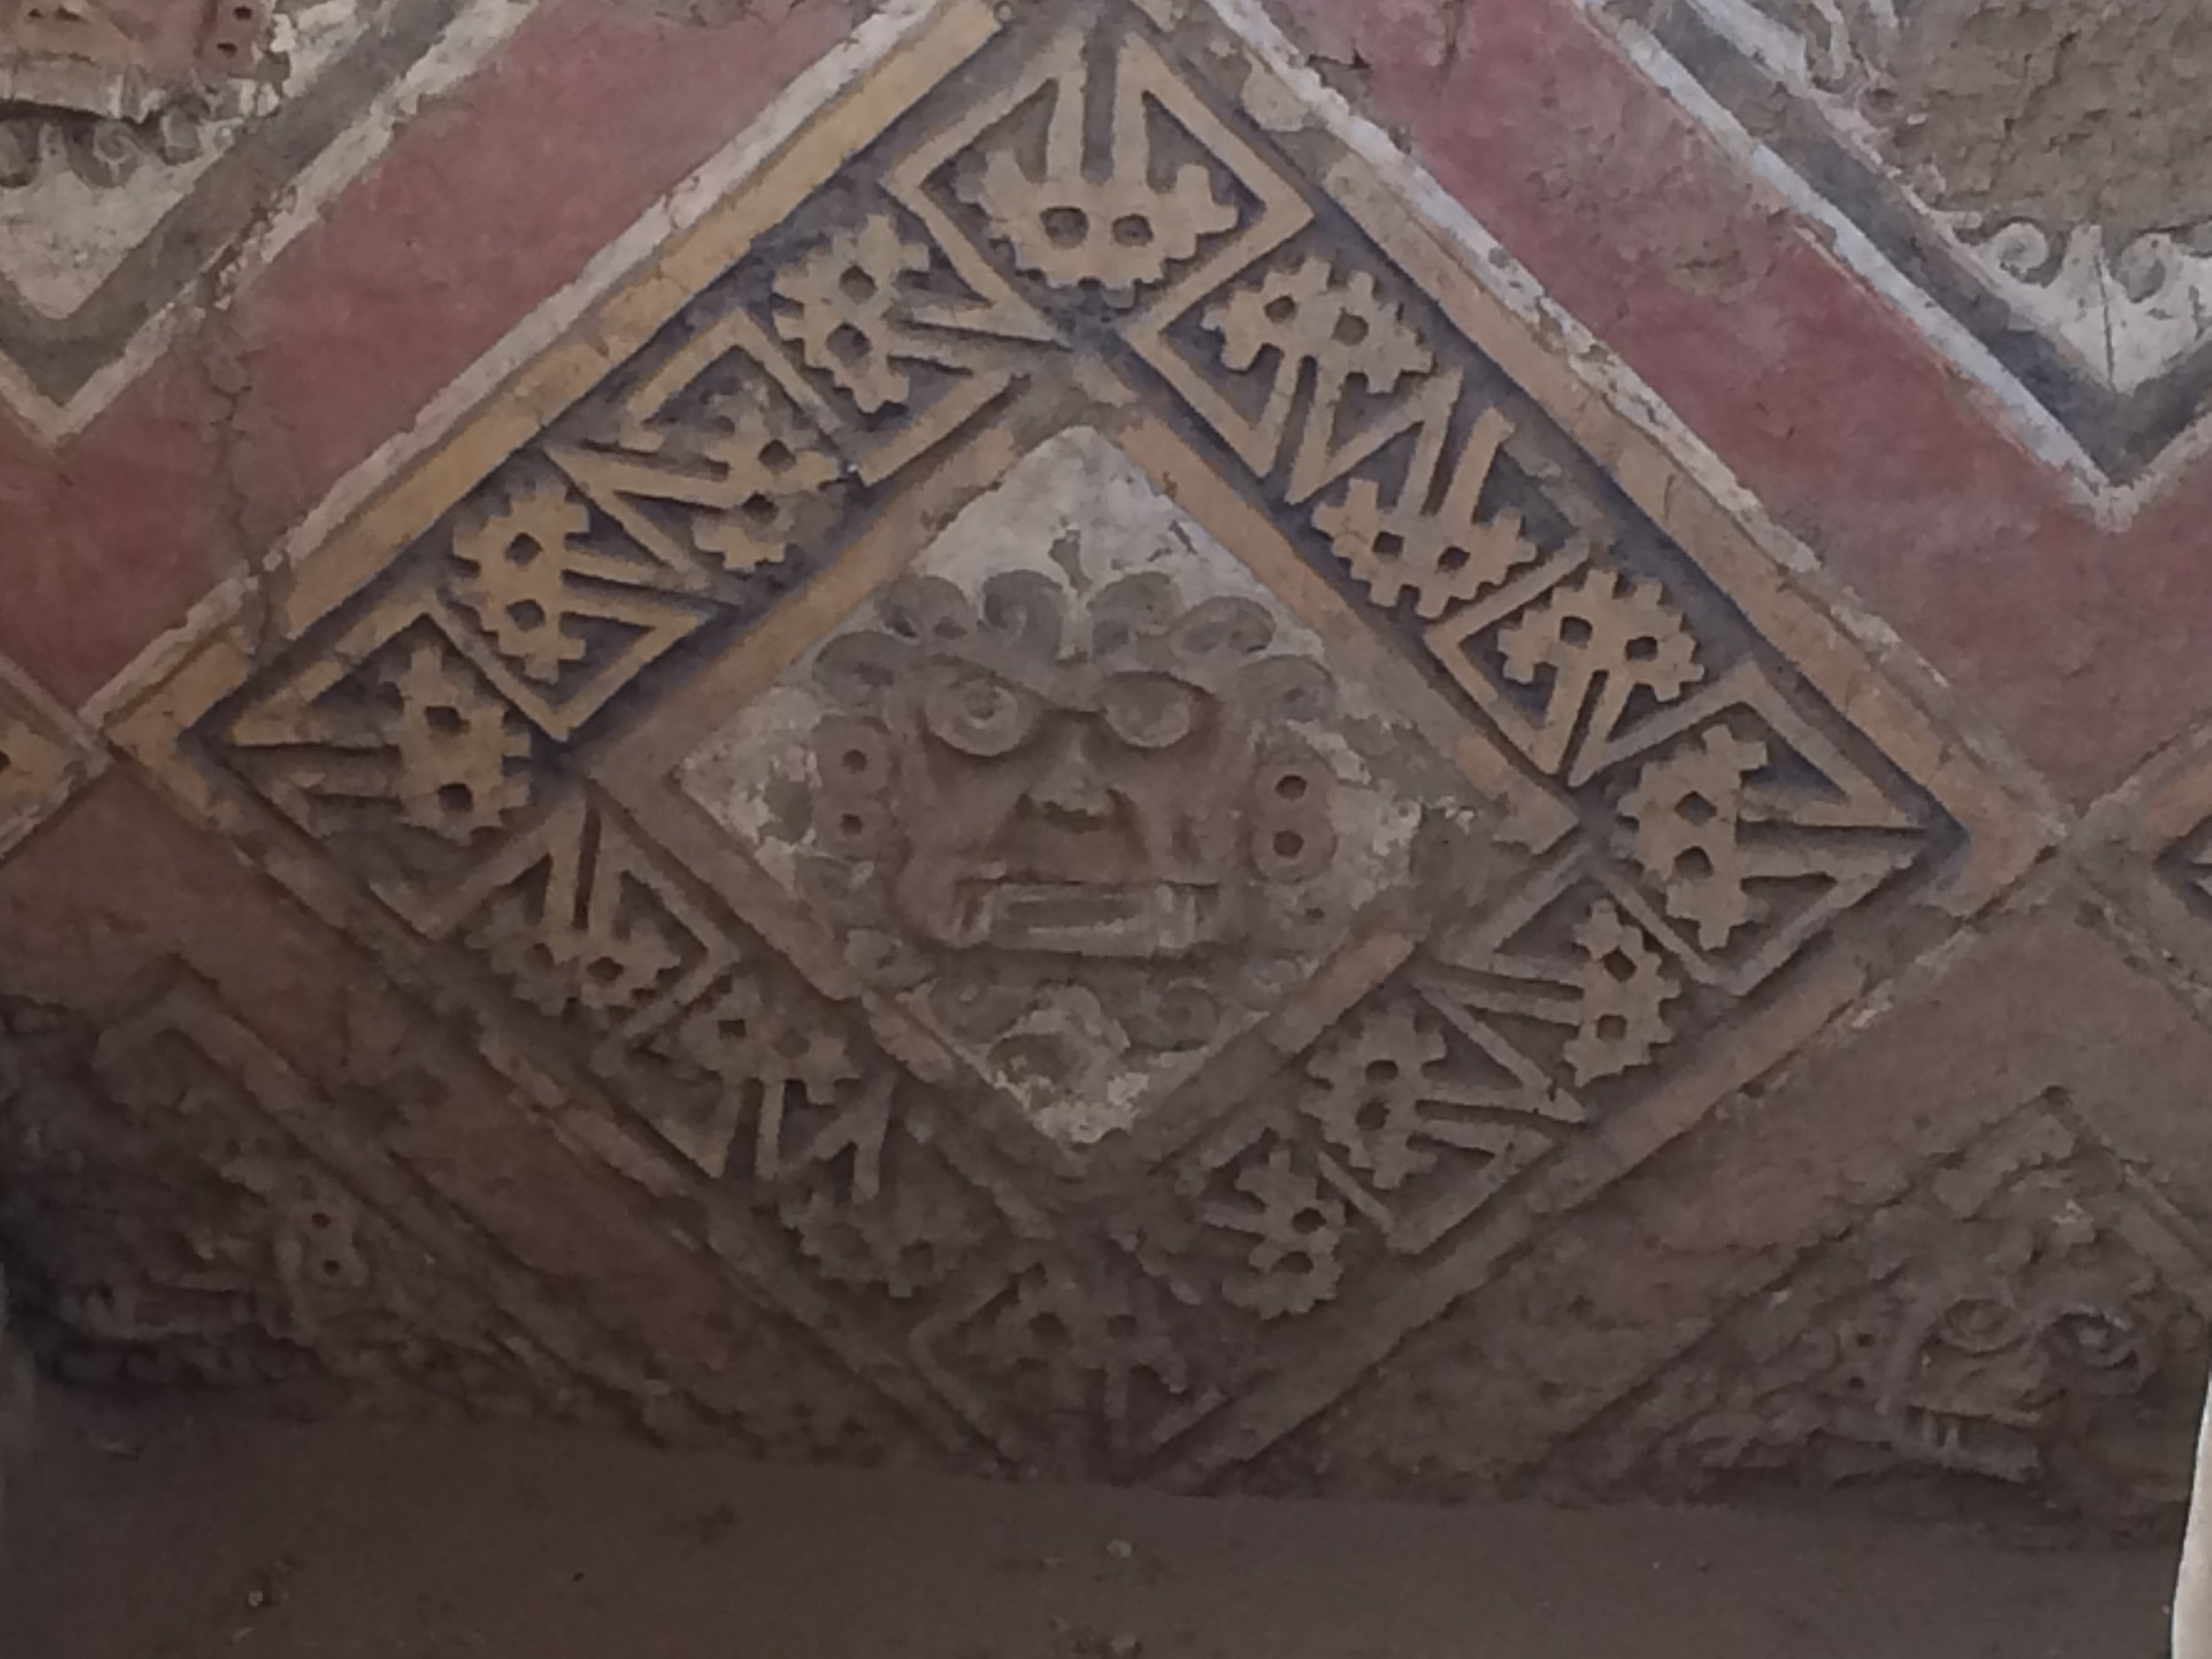 Close up of wall - a stern god